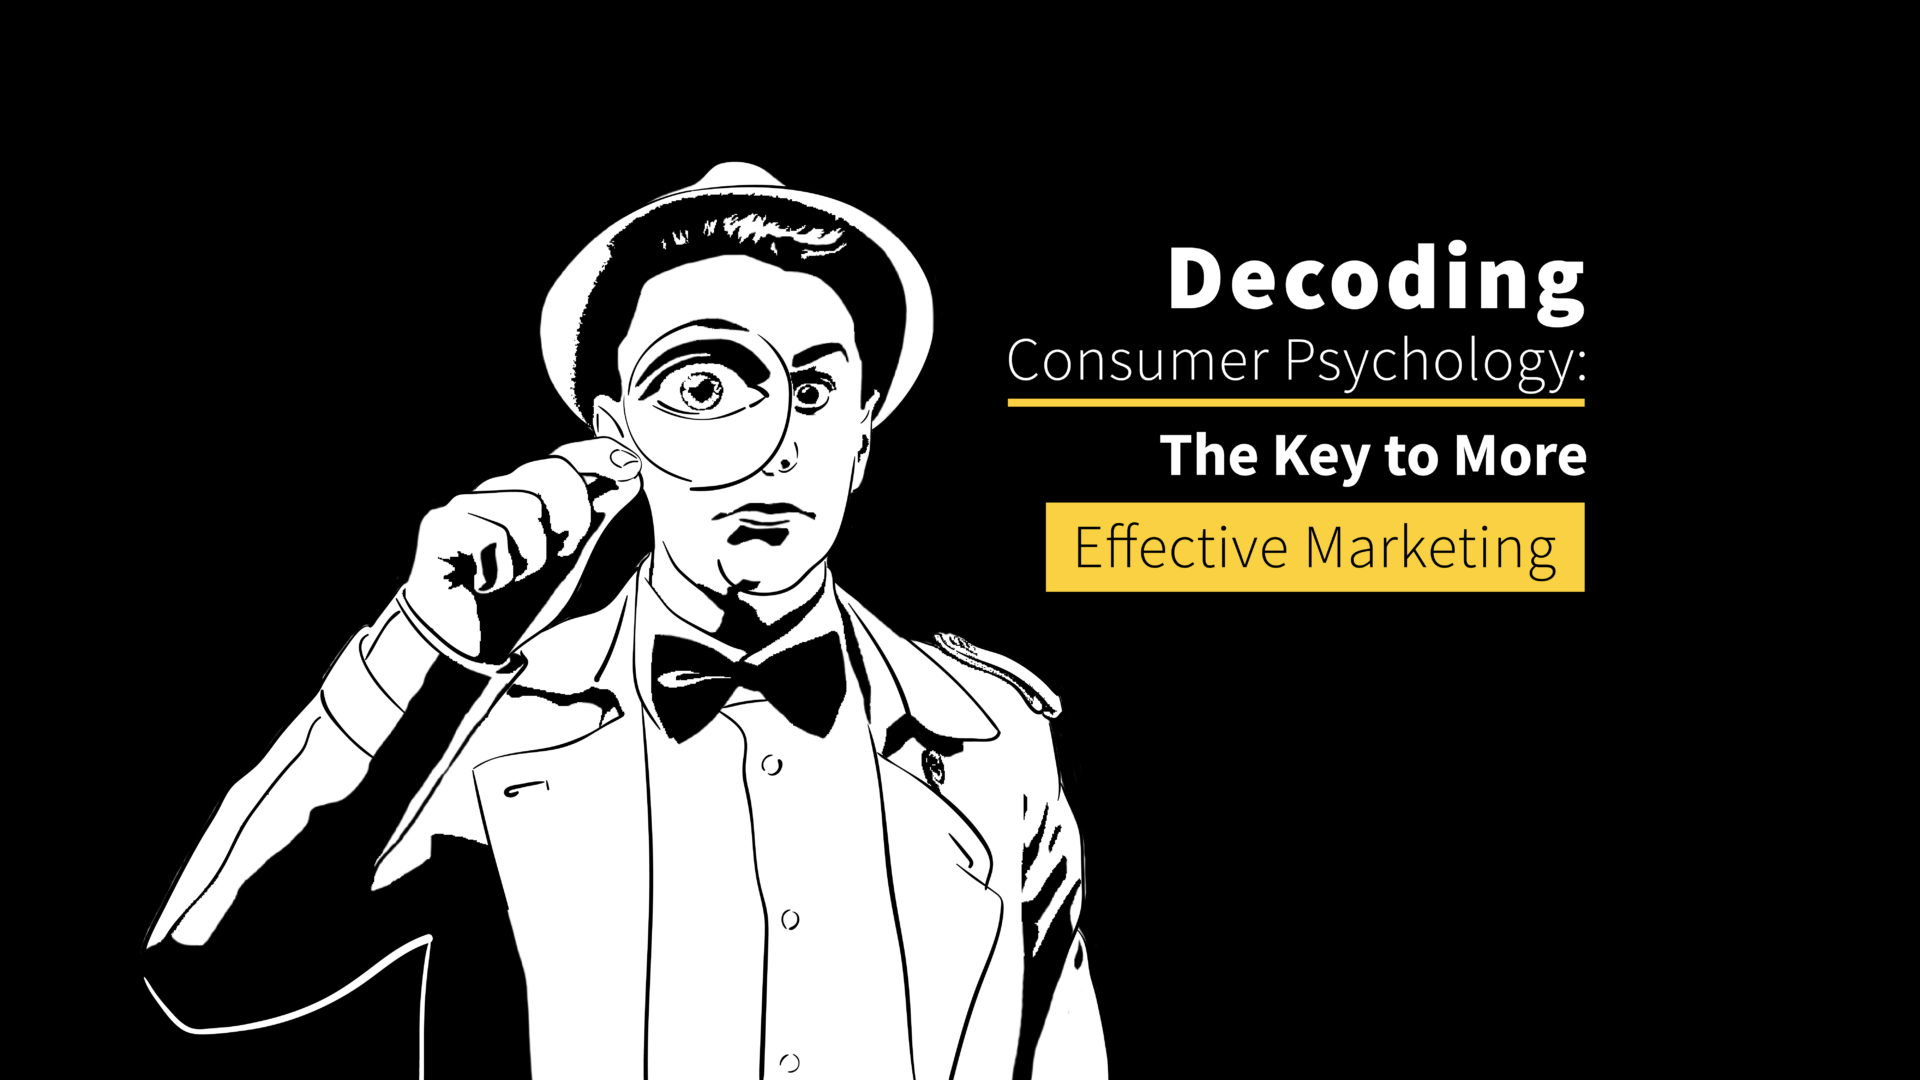 Decoding Consumer Psychology: The Key to More Effective Marketing